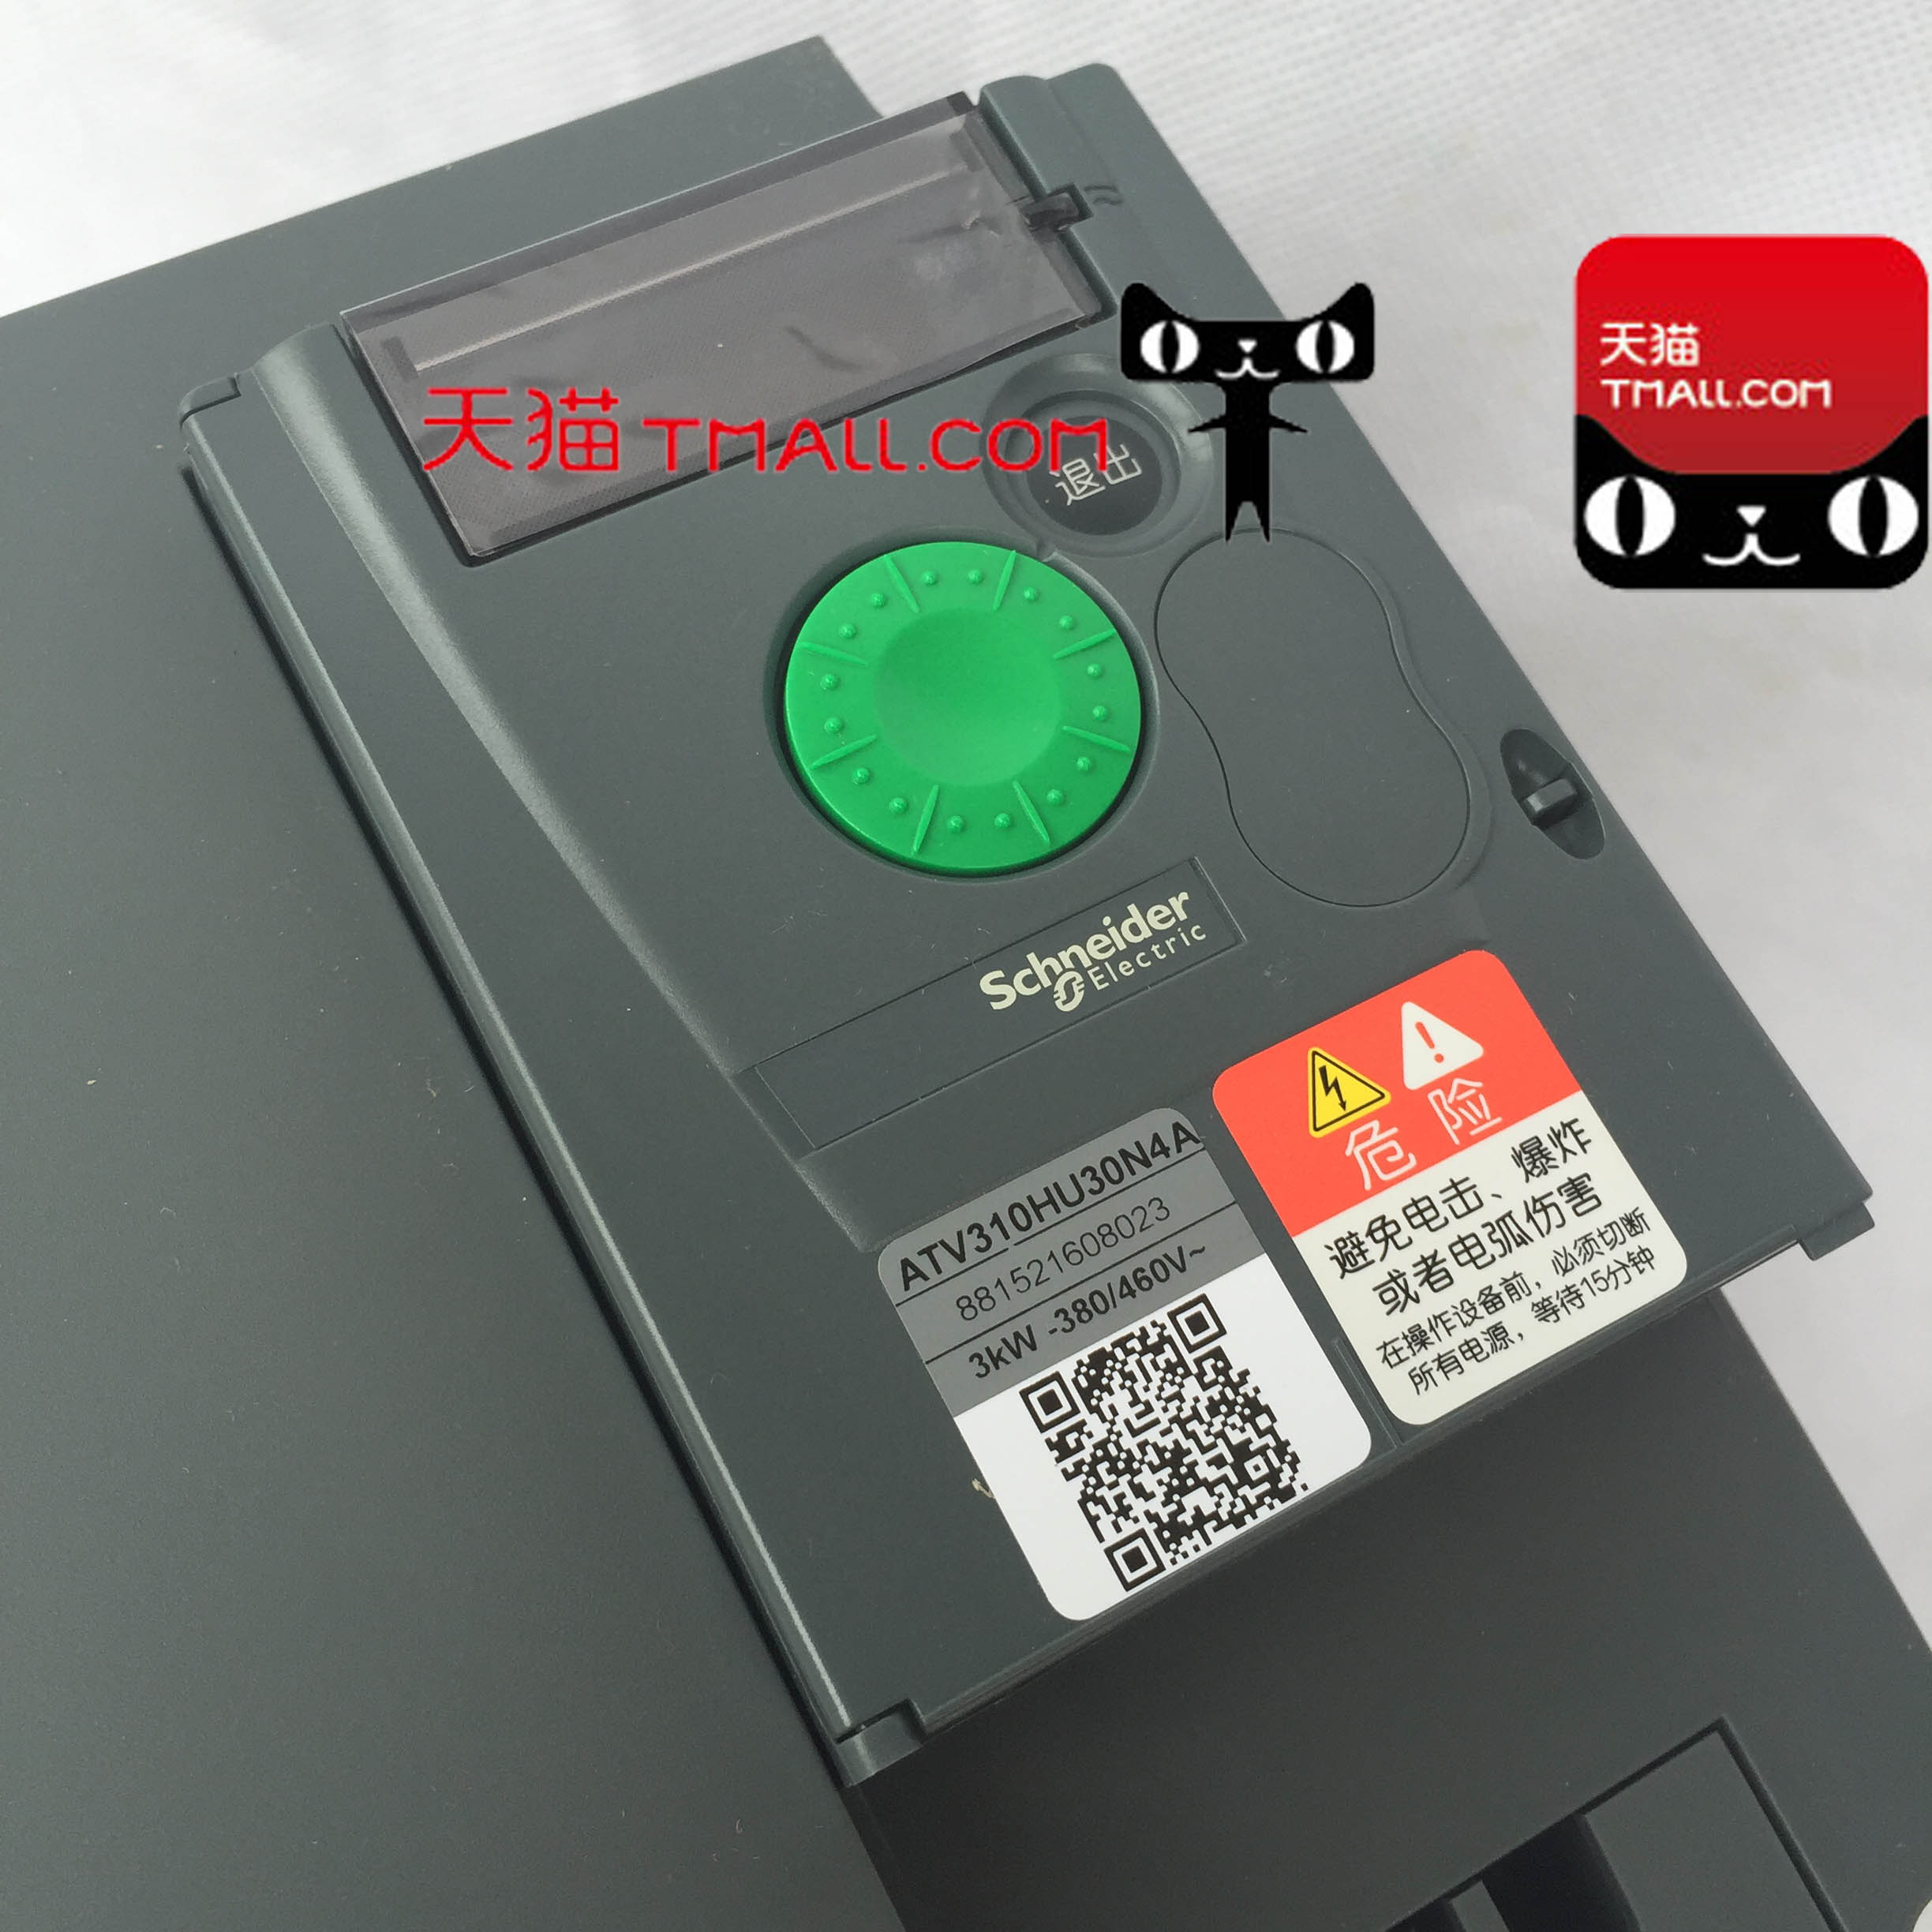 Genuine schneider inverter inverter 5.5kw ATV310HU55N4 12.6A ATV303 replacement specials